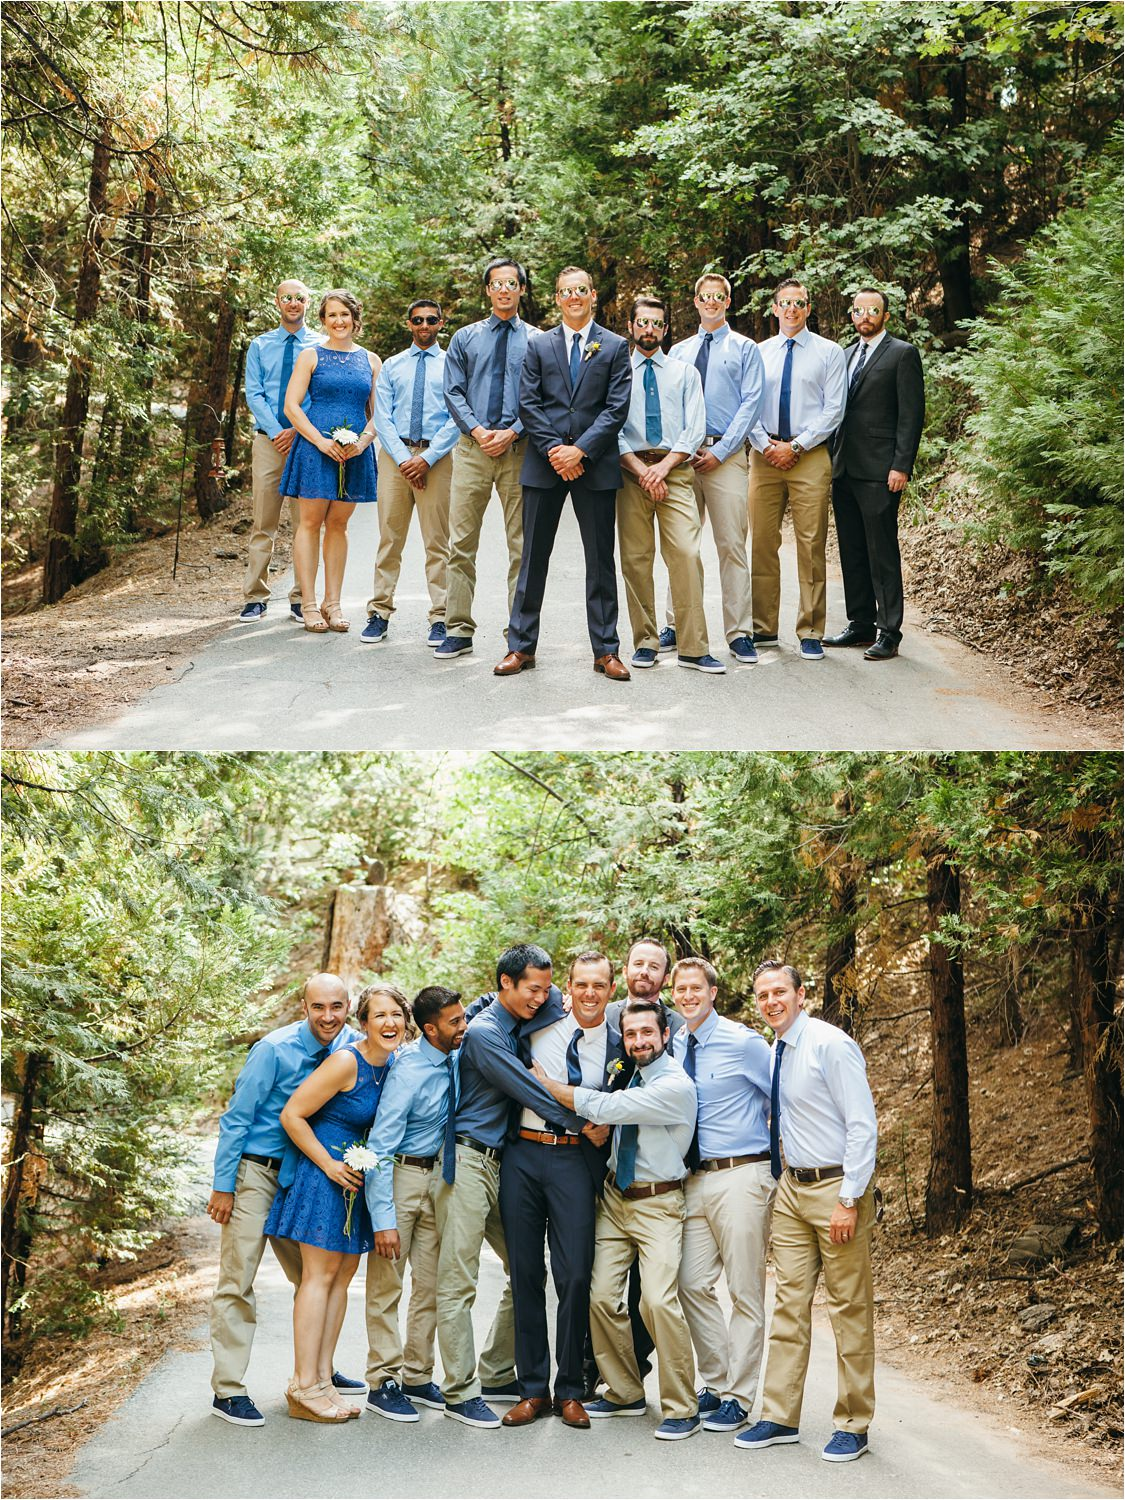 Groom and Groomsmen - Mountain Wedding in California - Destination Wedding - https://brittneyhannonphotography.com